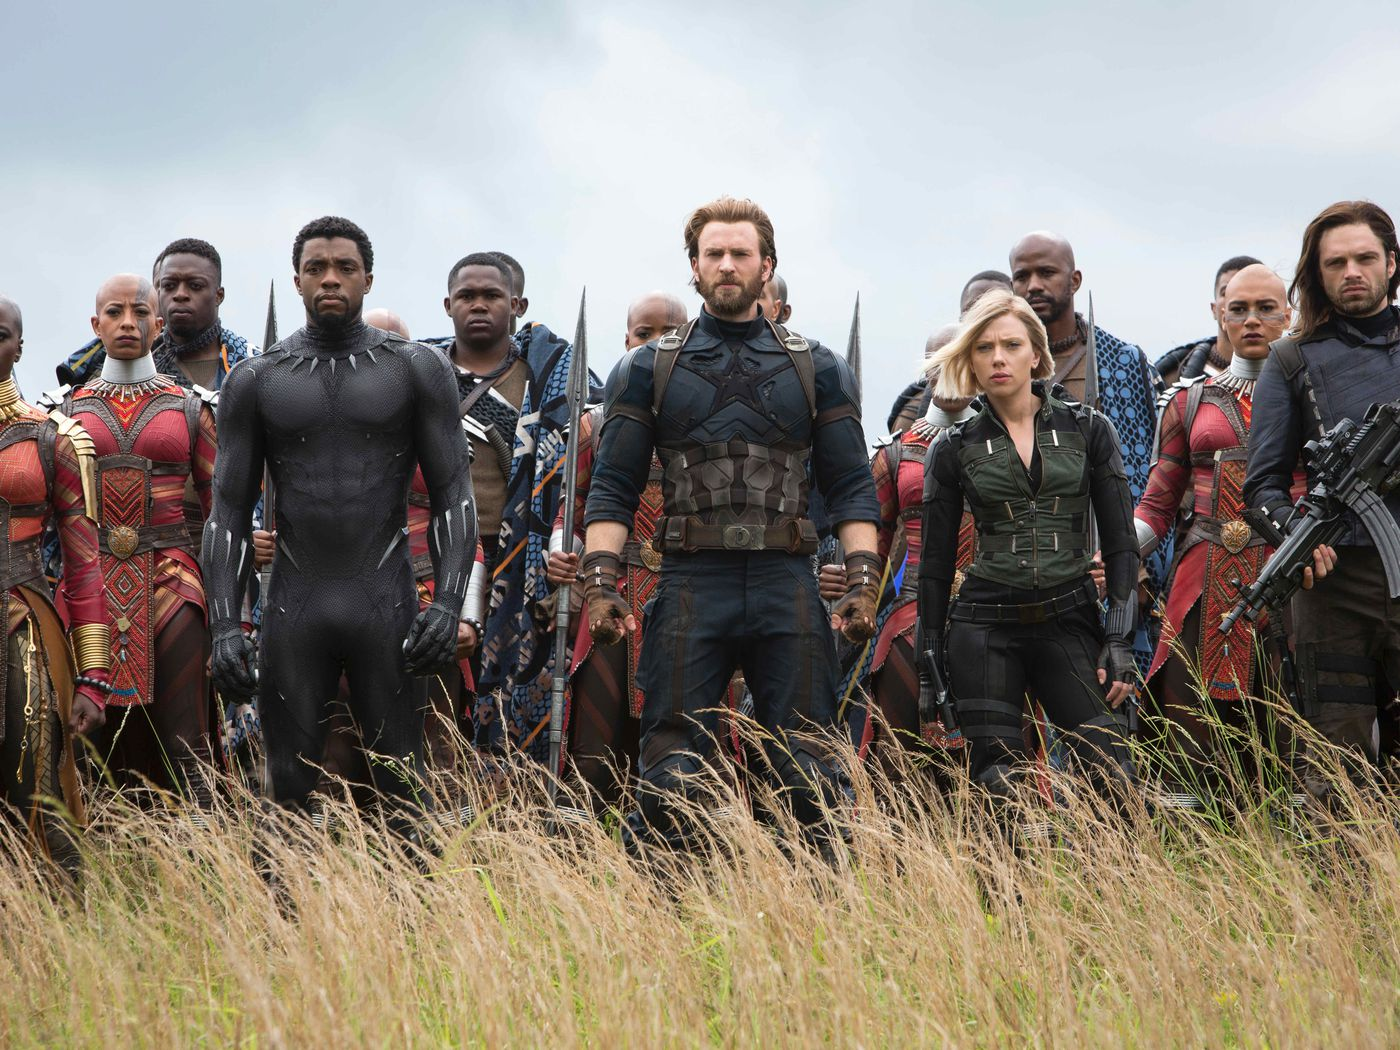 Avengers: Endgame: which Avengers will live and which ones may die